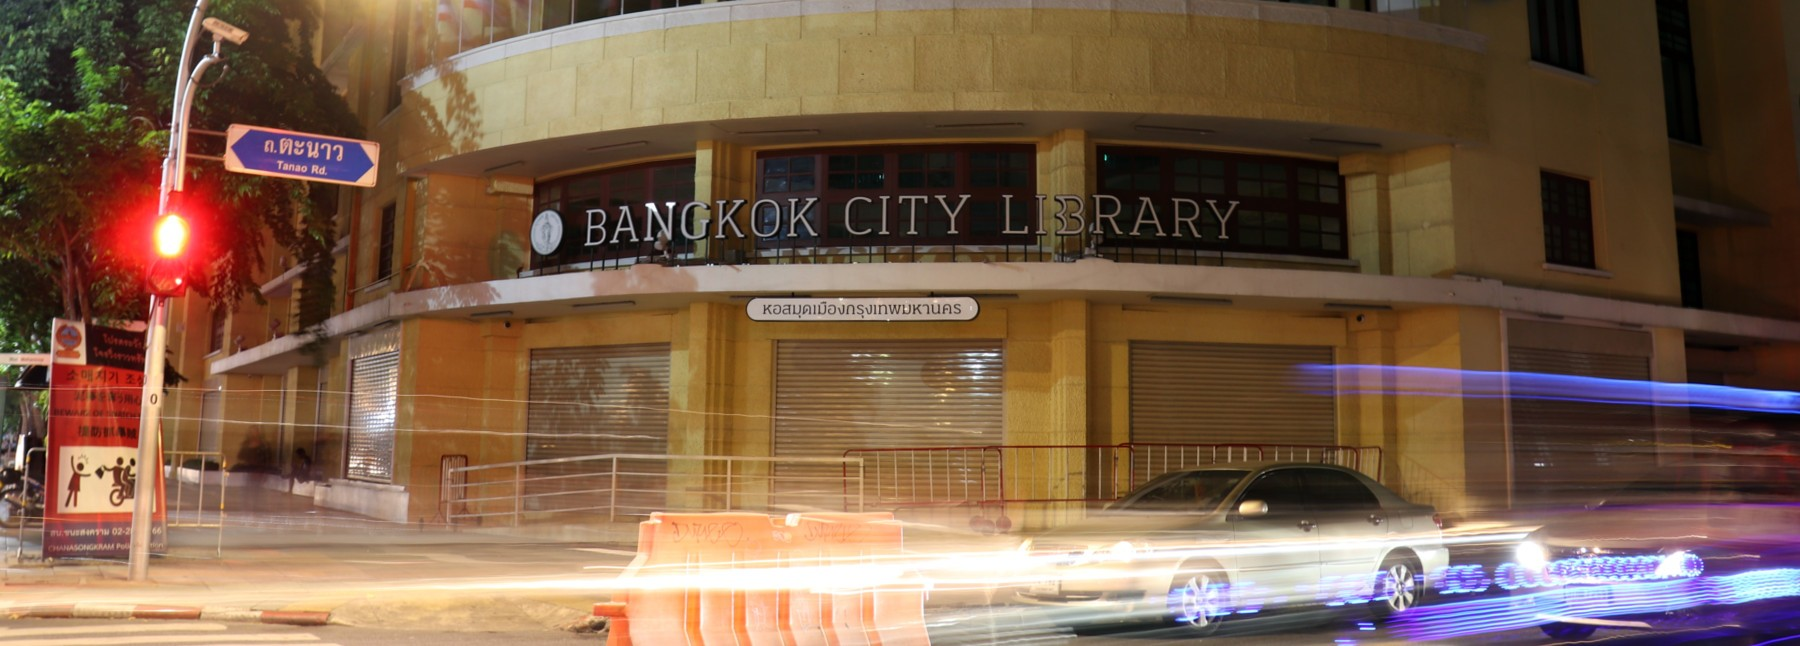 bangkok-city-library